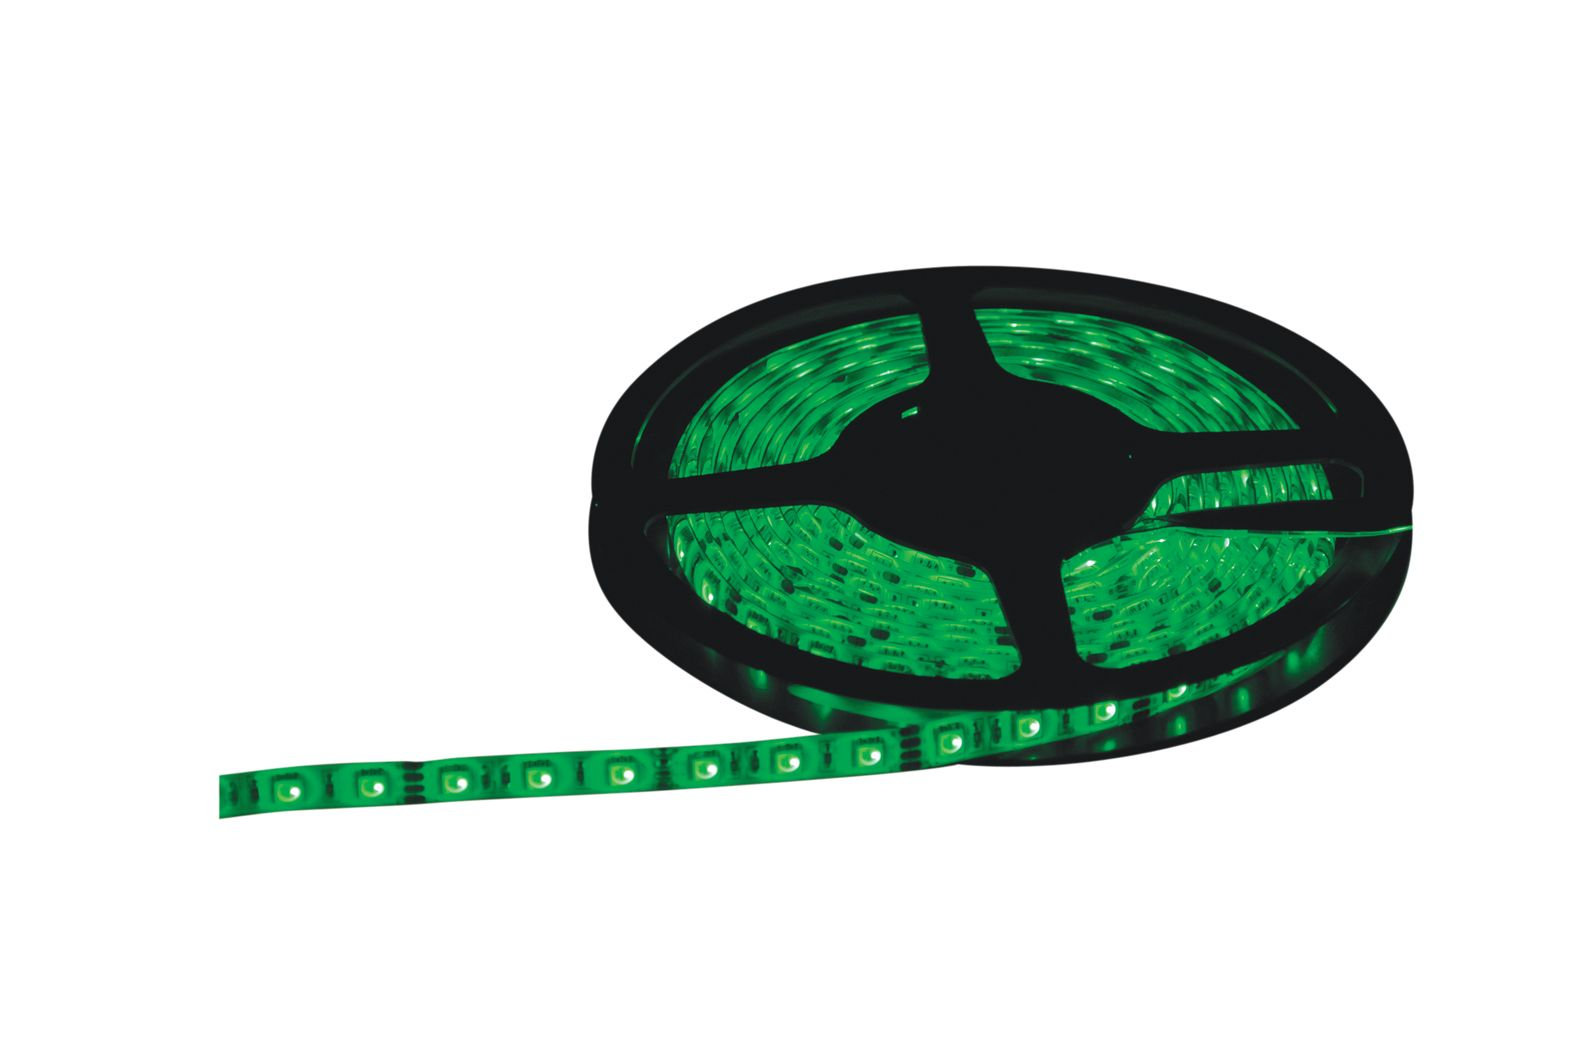 Rgb Tape Light With 60 Ultra Bright Leds Per Metre Super